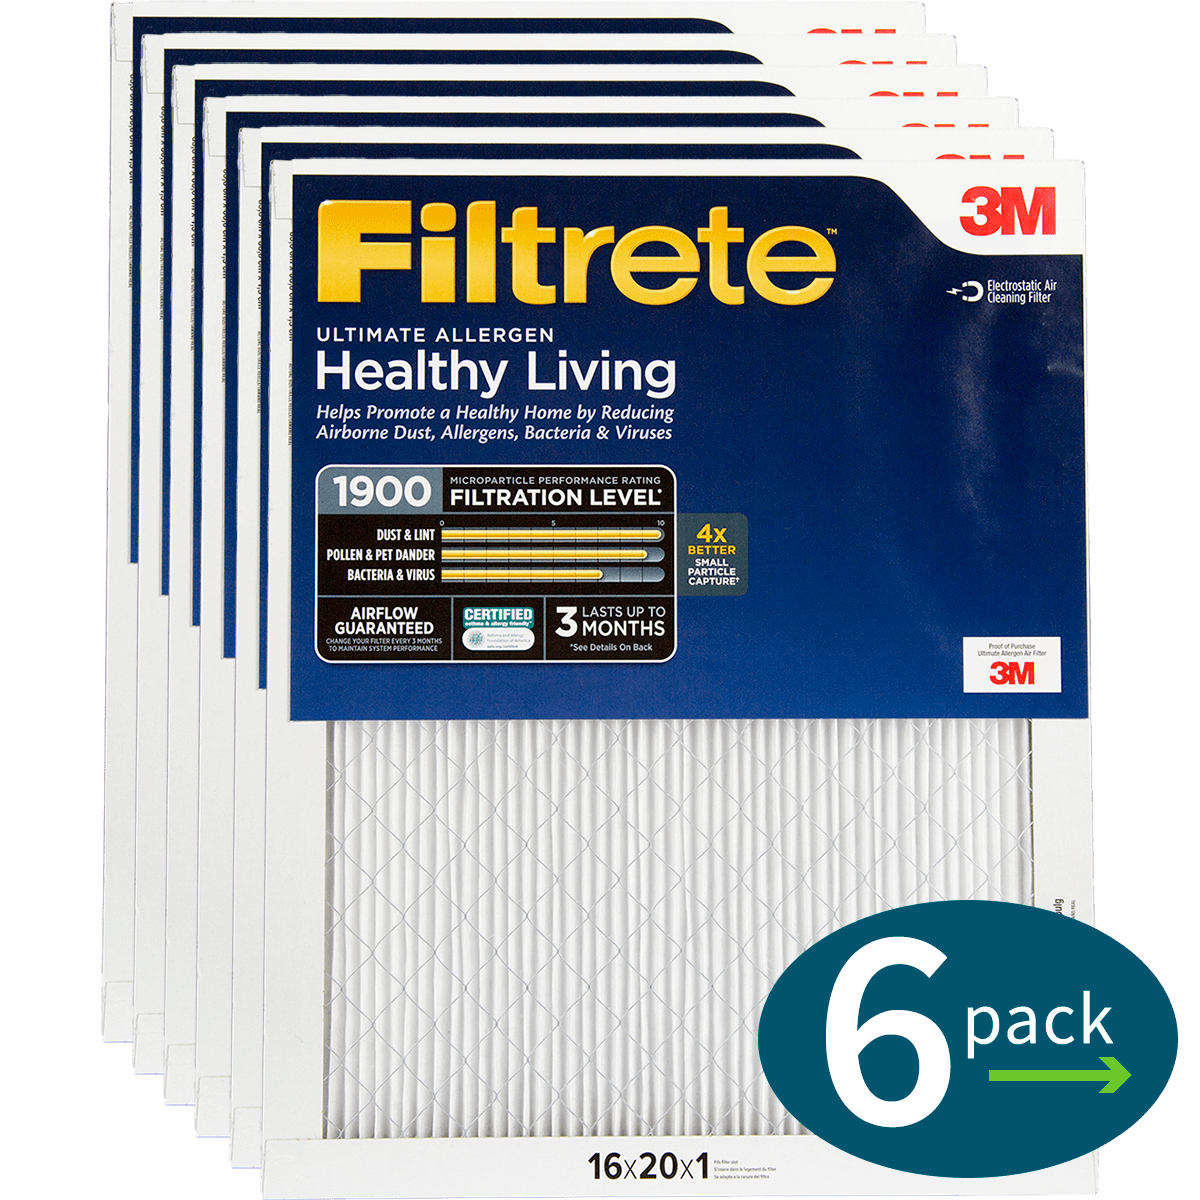 3M Filtrete Healthy Living 1900 MPR Ultimate Allergen Reduction Air Filters fi5345